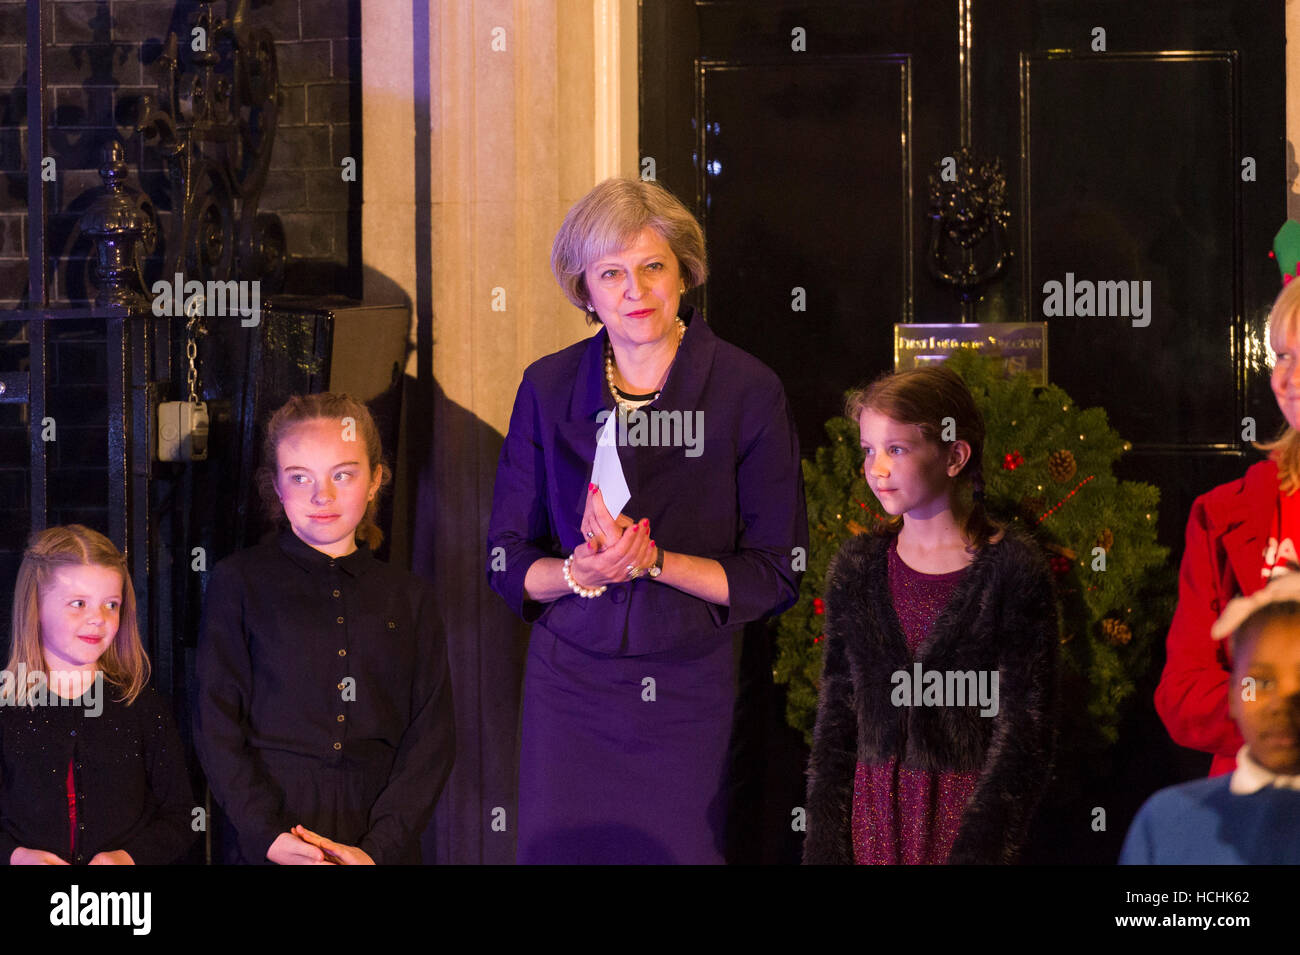 London, UK. 8th December, 2016. Theresa May the British Prime Minister with children nominated by UK charities and - Stock Image